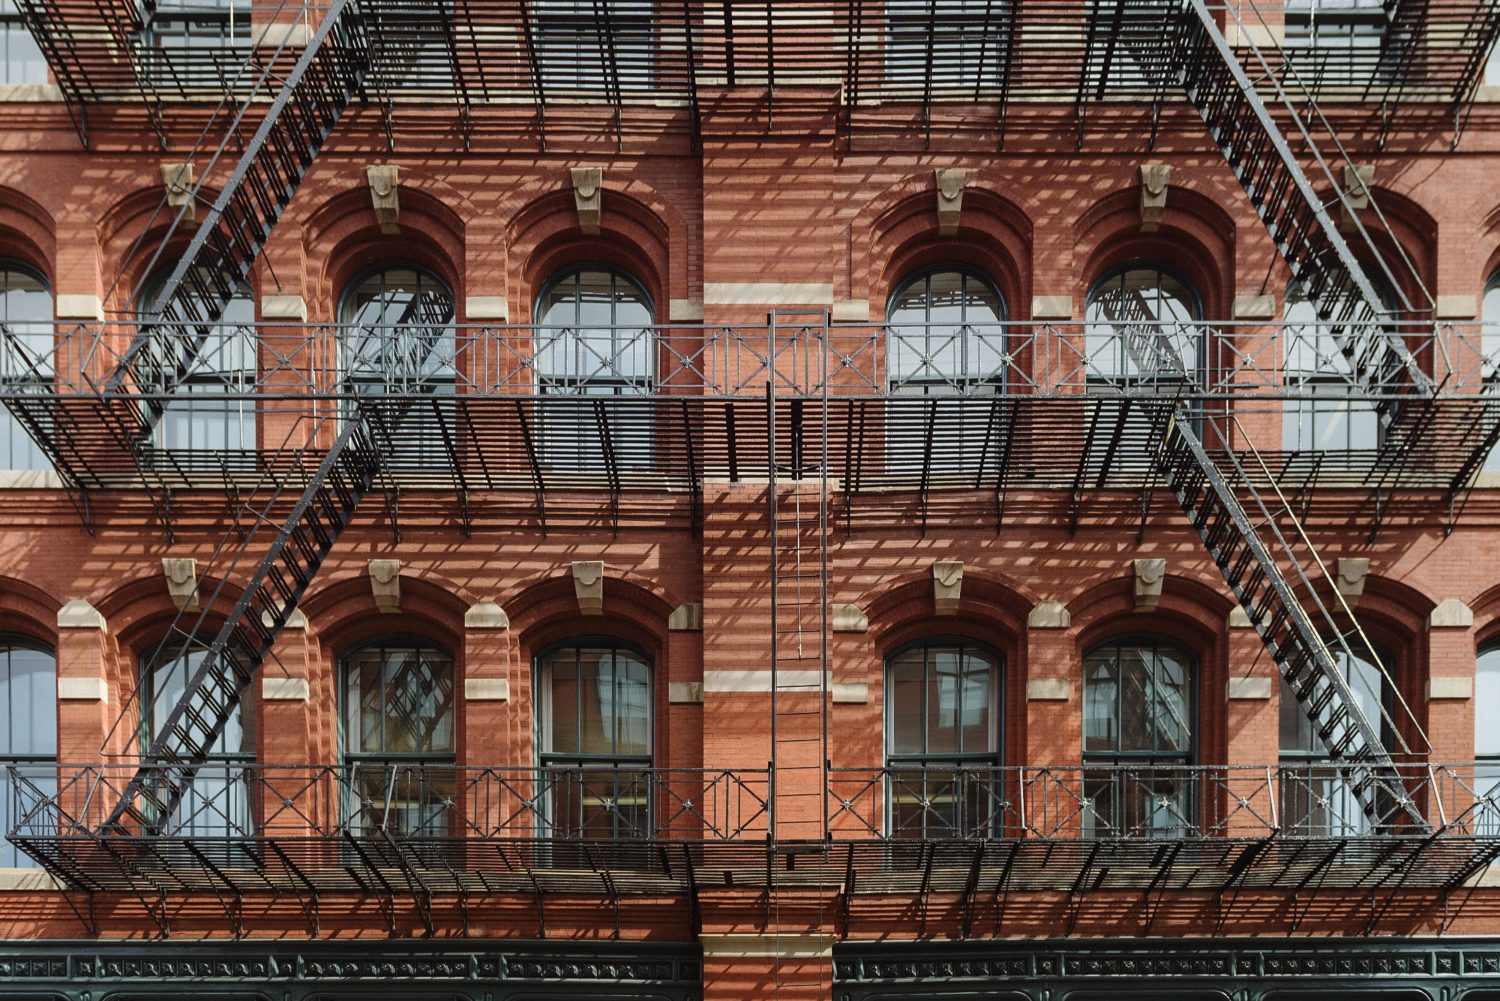 SoHo architectural photographer for Allies and Morrison